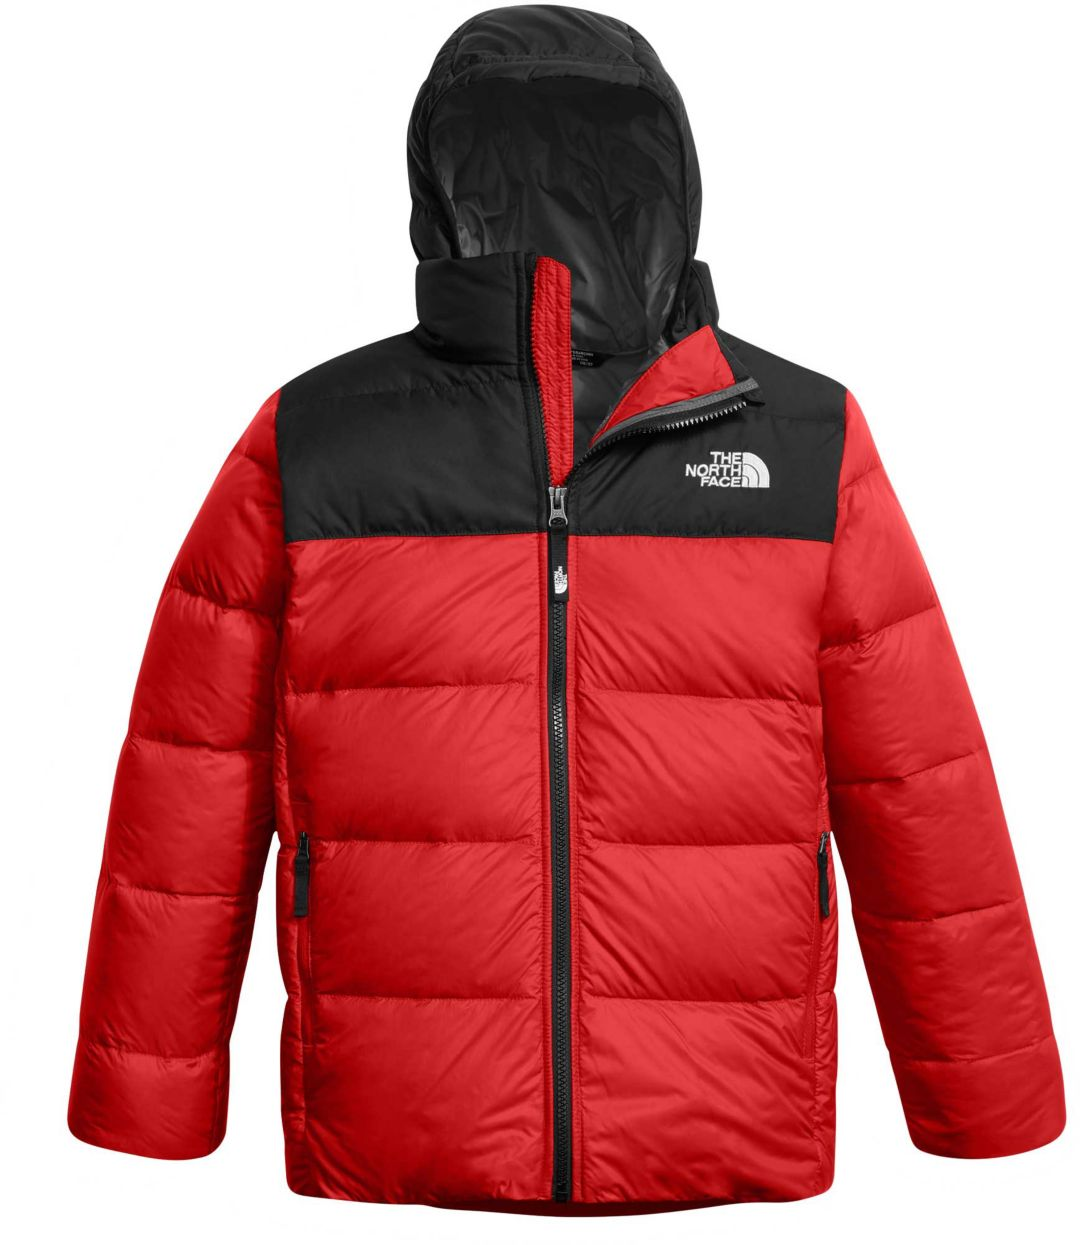 b5e656e8d The North Face Boys' Double Down Triclimate Jacket